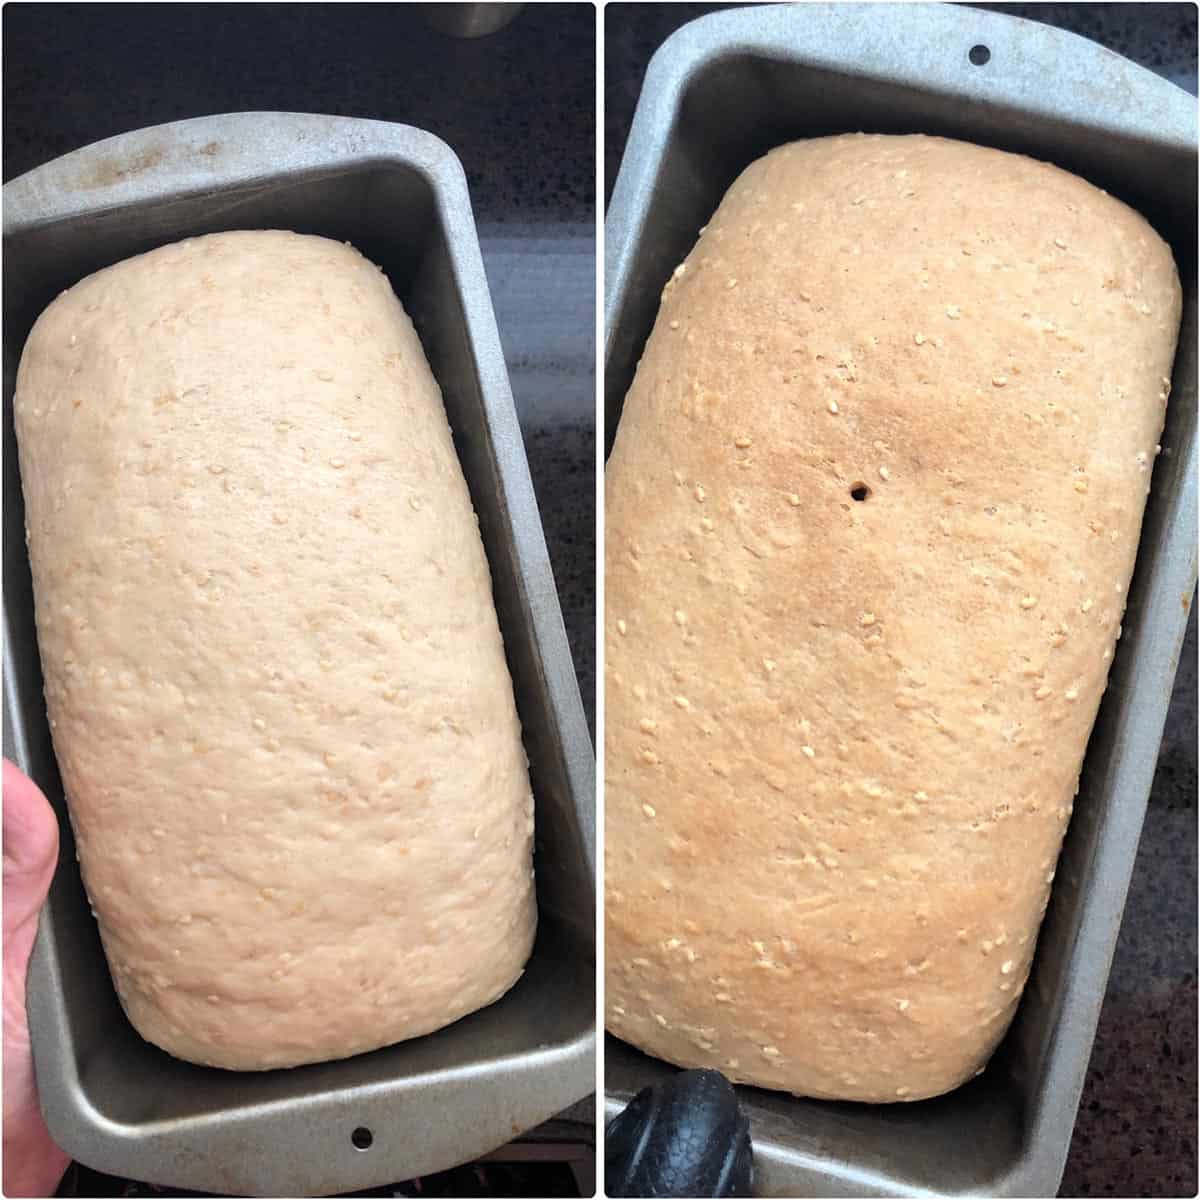 Side by side photos of the loaf before and after baking